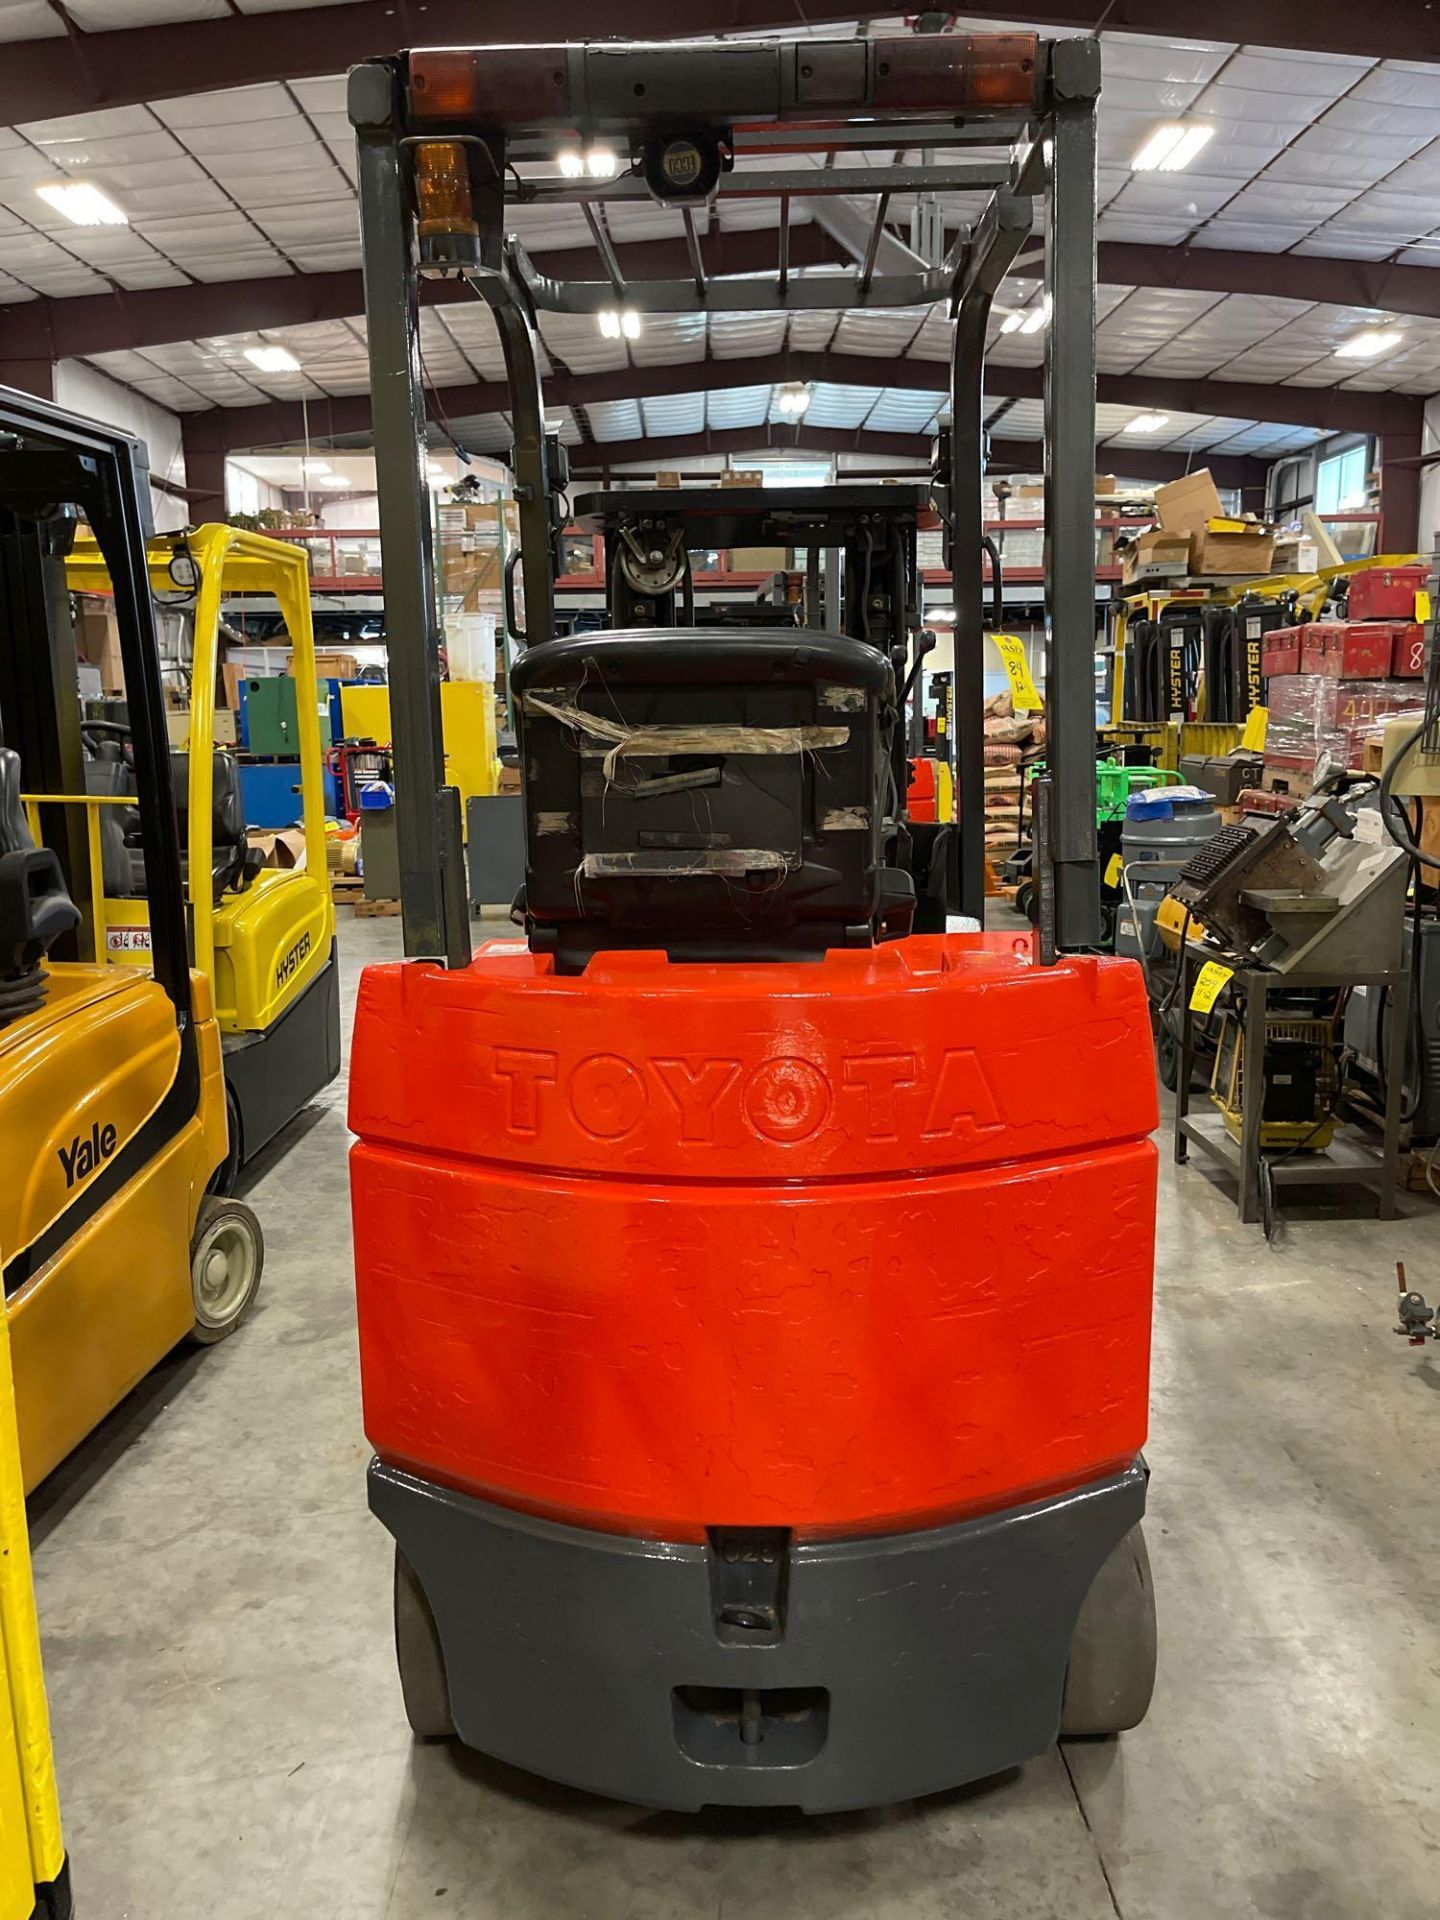 """TOYOTA 7FBCU25 ELECTRIC FORKLIFT, 5,000 LB CAPACITY, 170.5"""" HEIGHT CAPACITY - Image 10 of 18"""